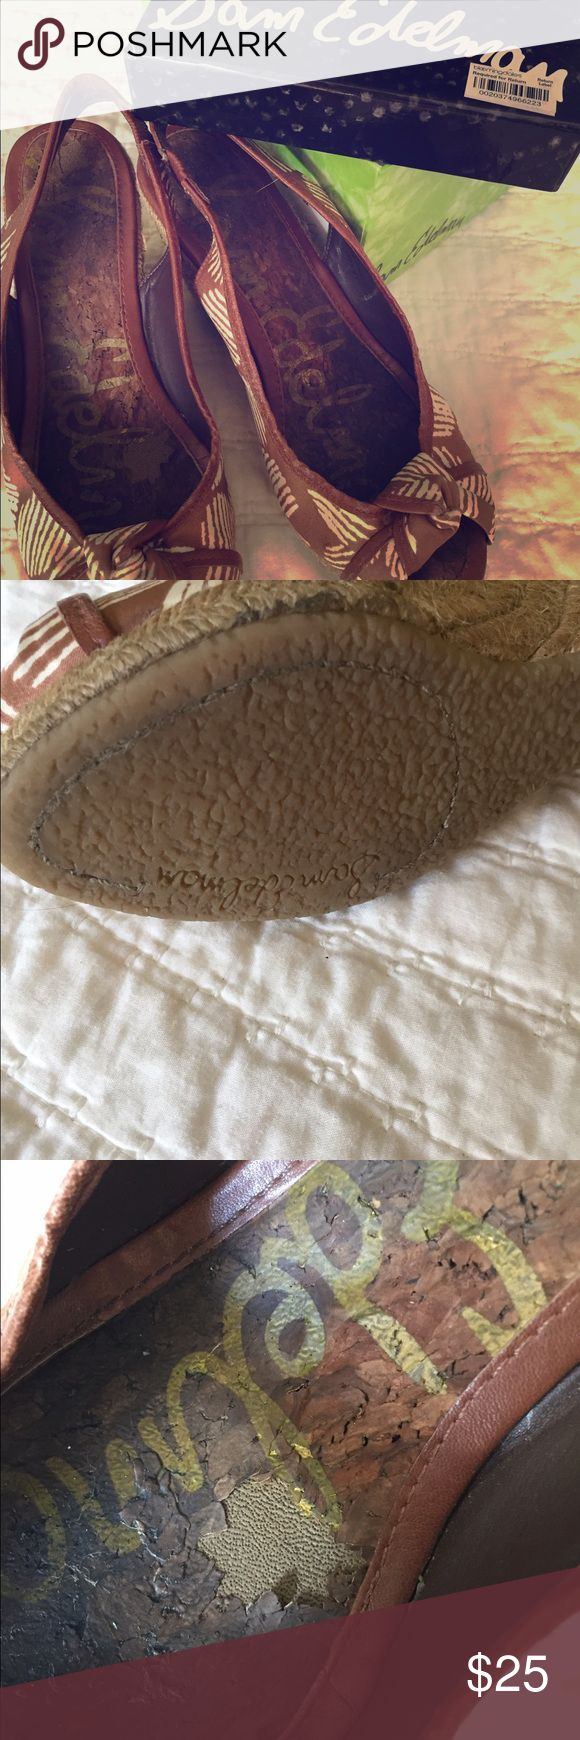 Sam Edelman espadrilles wedges Cute espadrilles! Neutral tones, really comfy. A little worn as you can see on the inside and on the back. Still have a lot of wear in them though! Sam Edelman Shoes Espadrilles